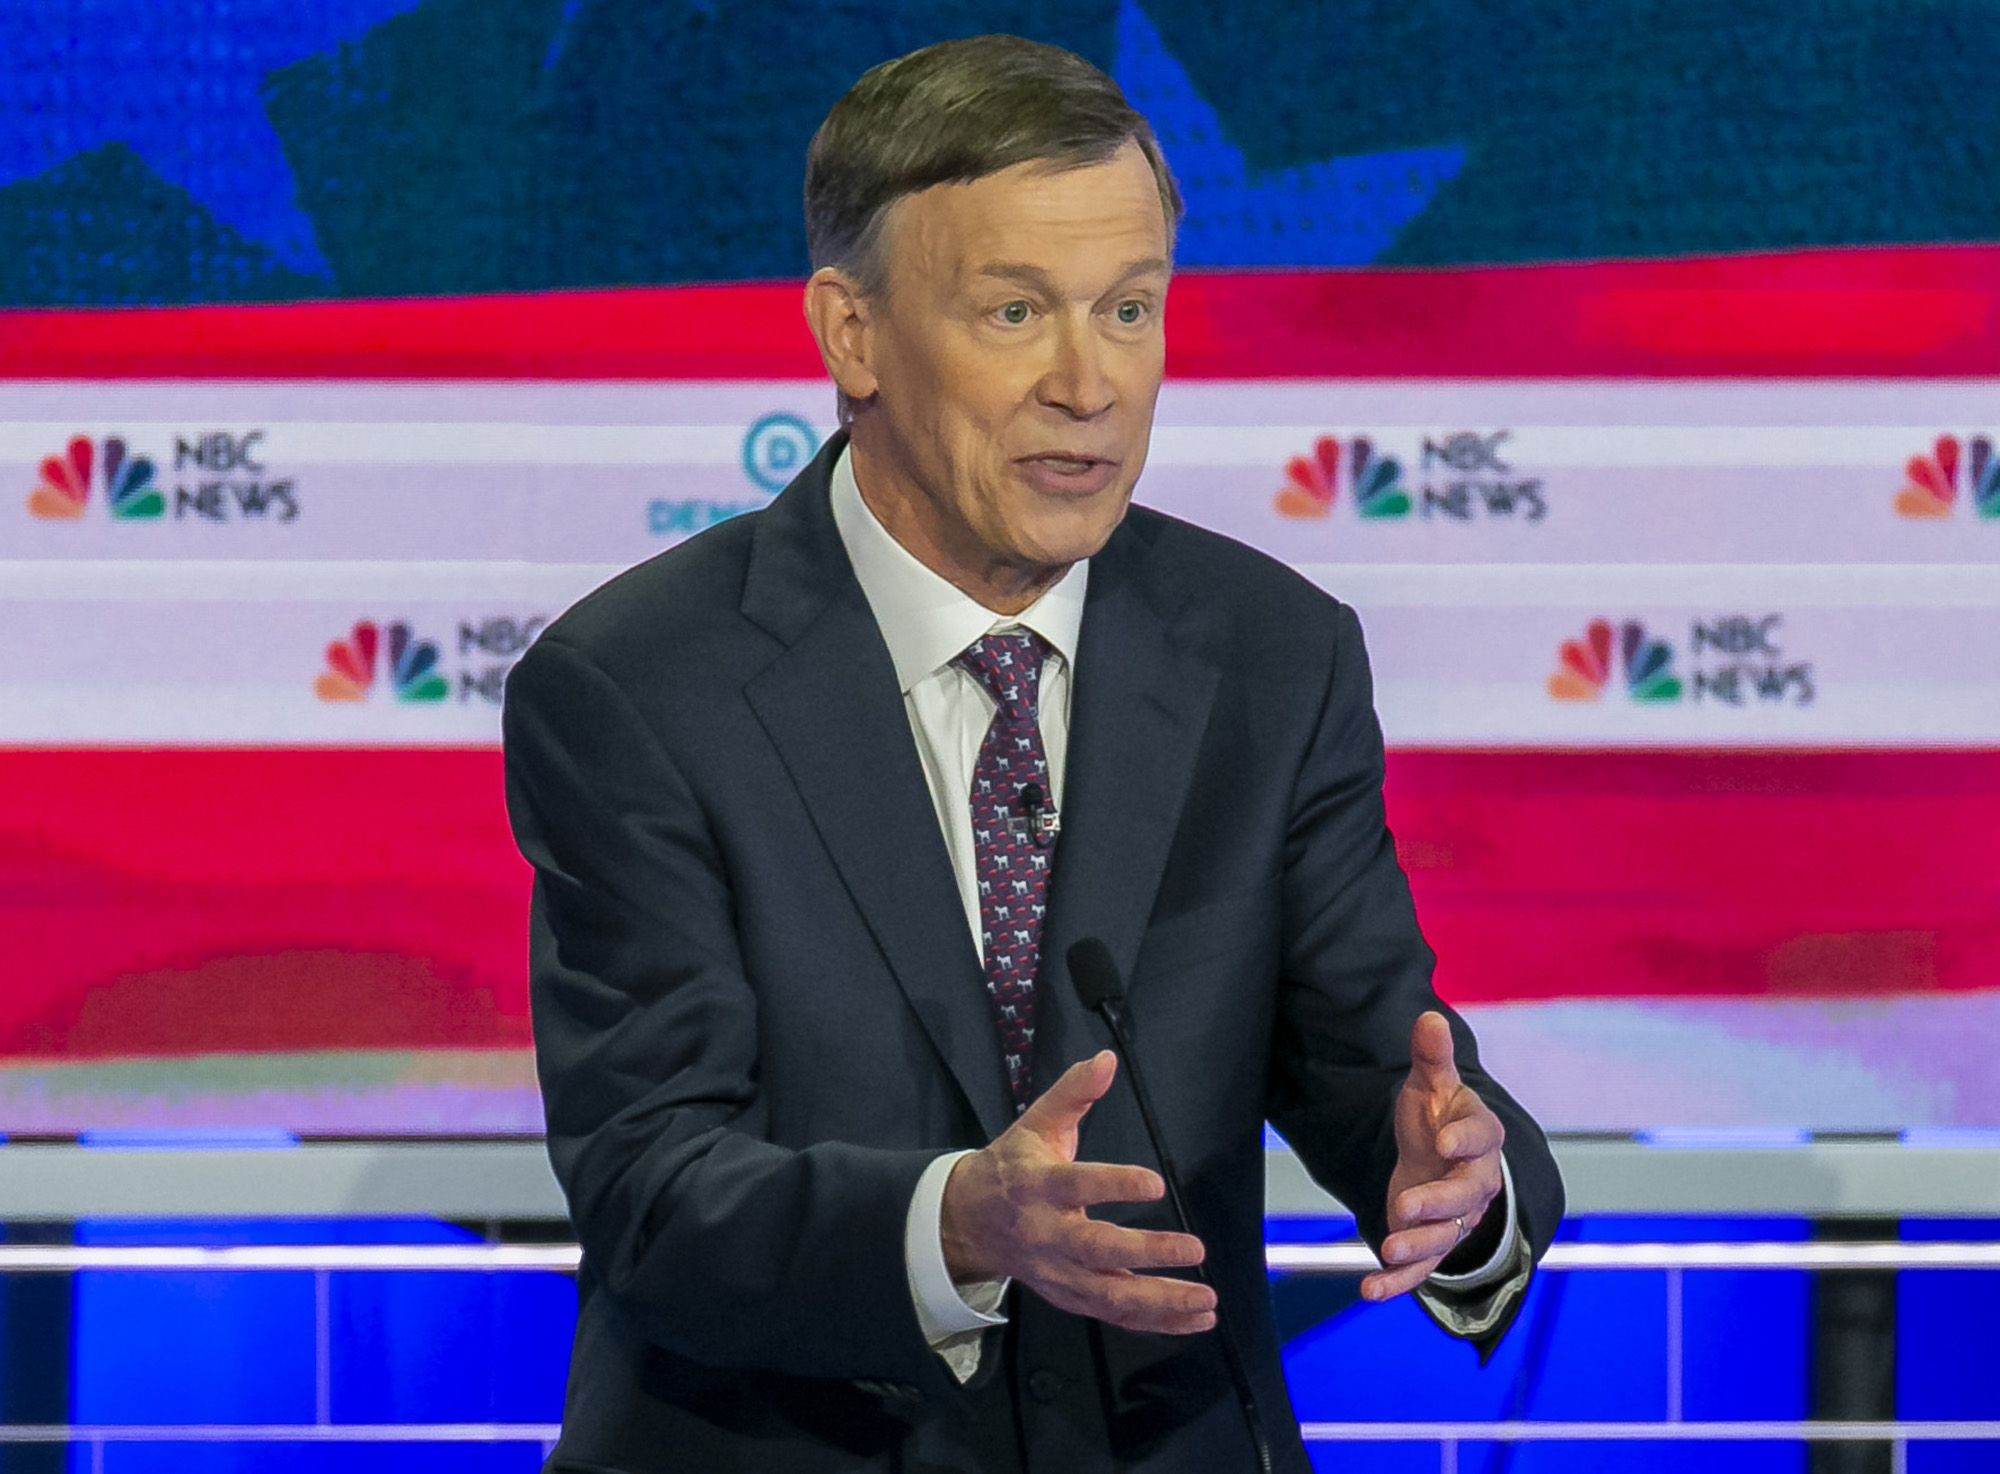 Former Colorado Gov. John Hickenlooper laid out how he intends to fight climate change and why he opposes the Green New Deal during the 2019 Democratic presidential primary debate.